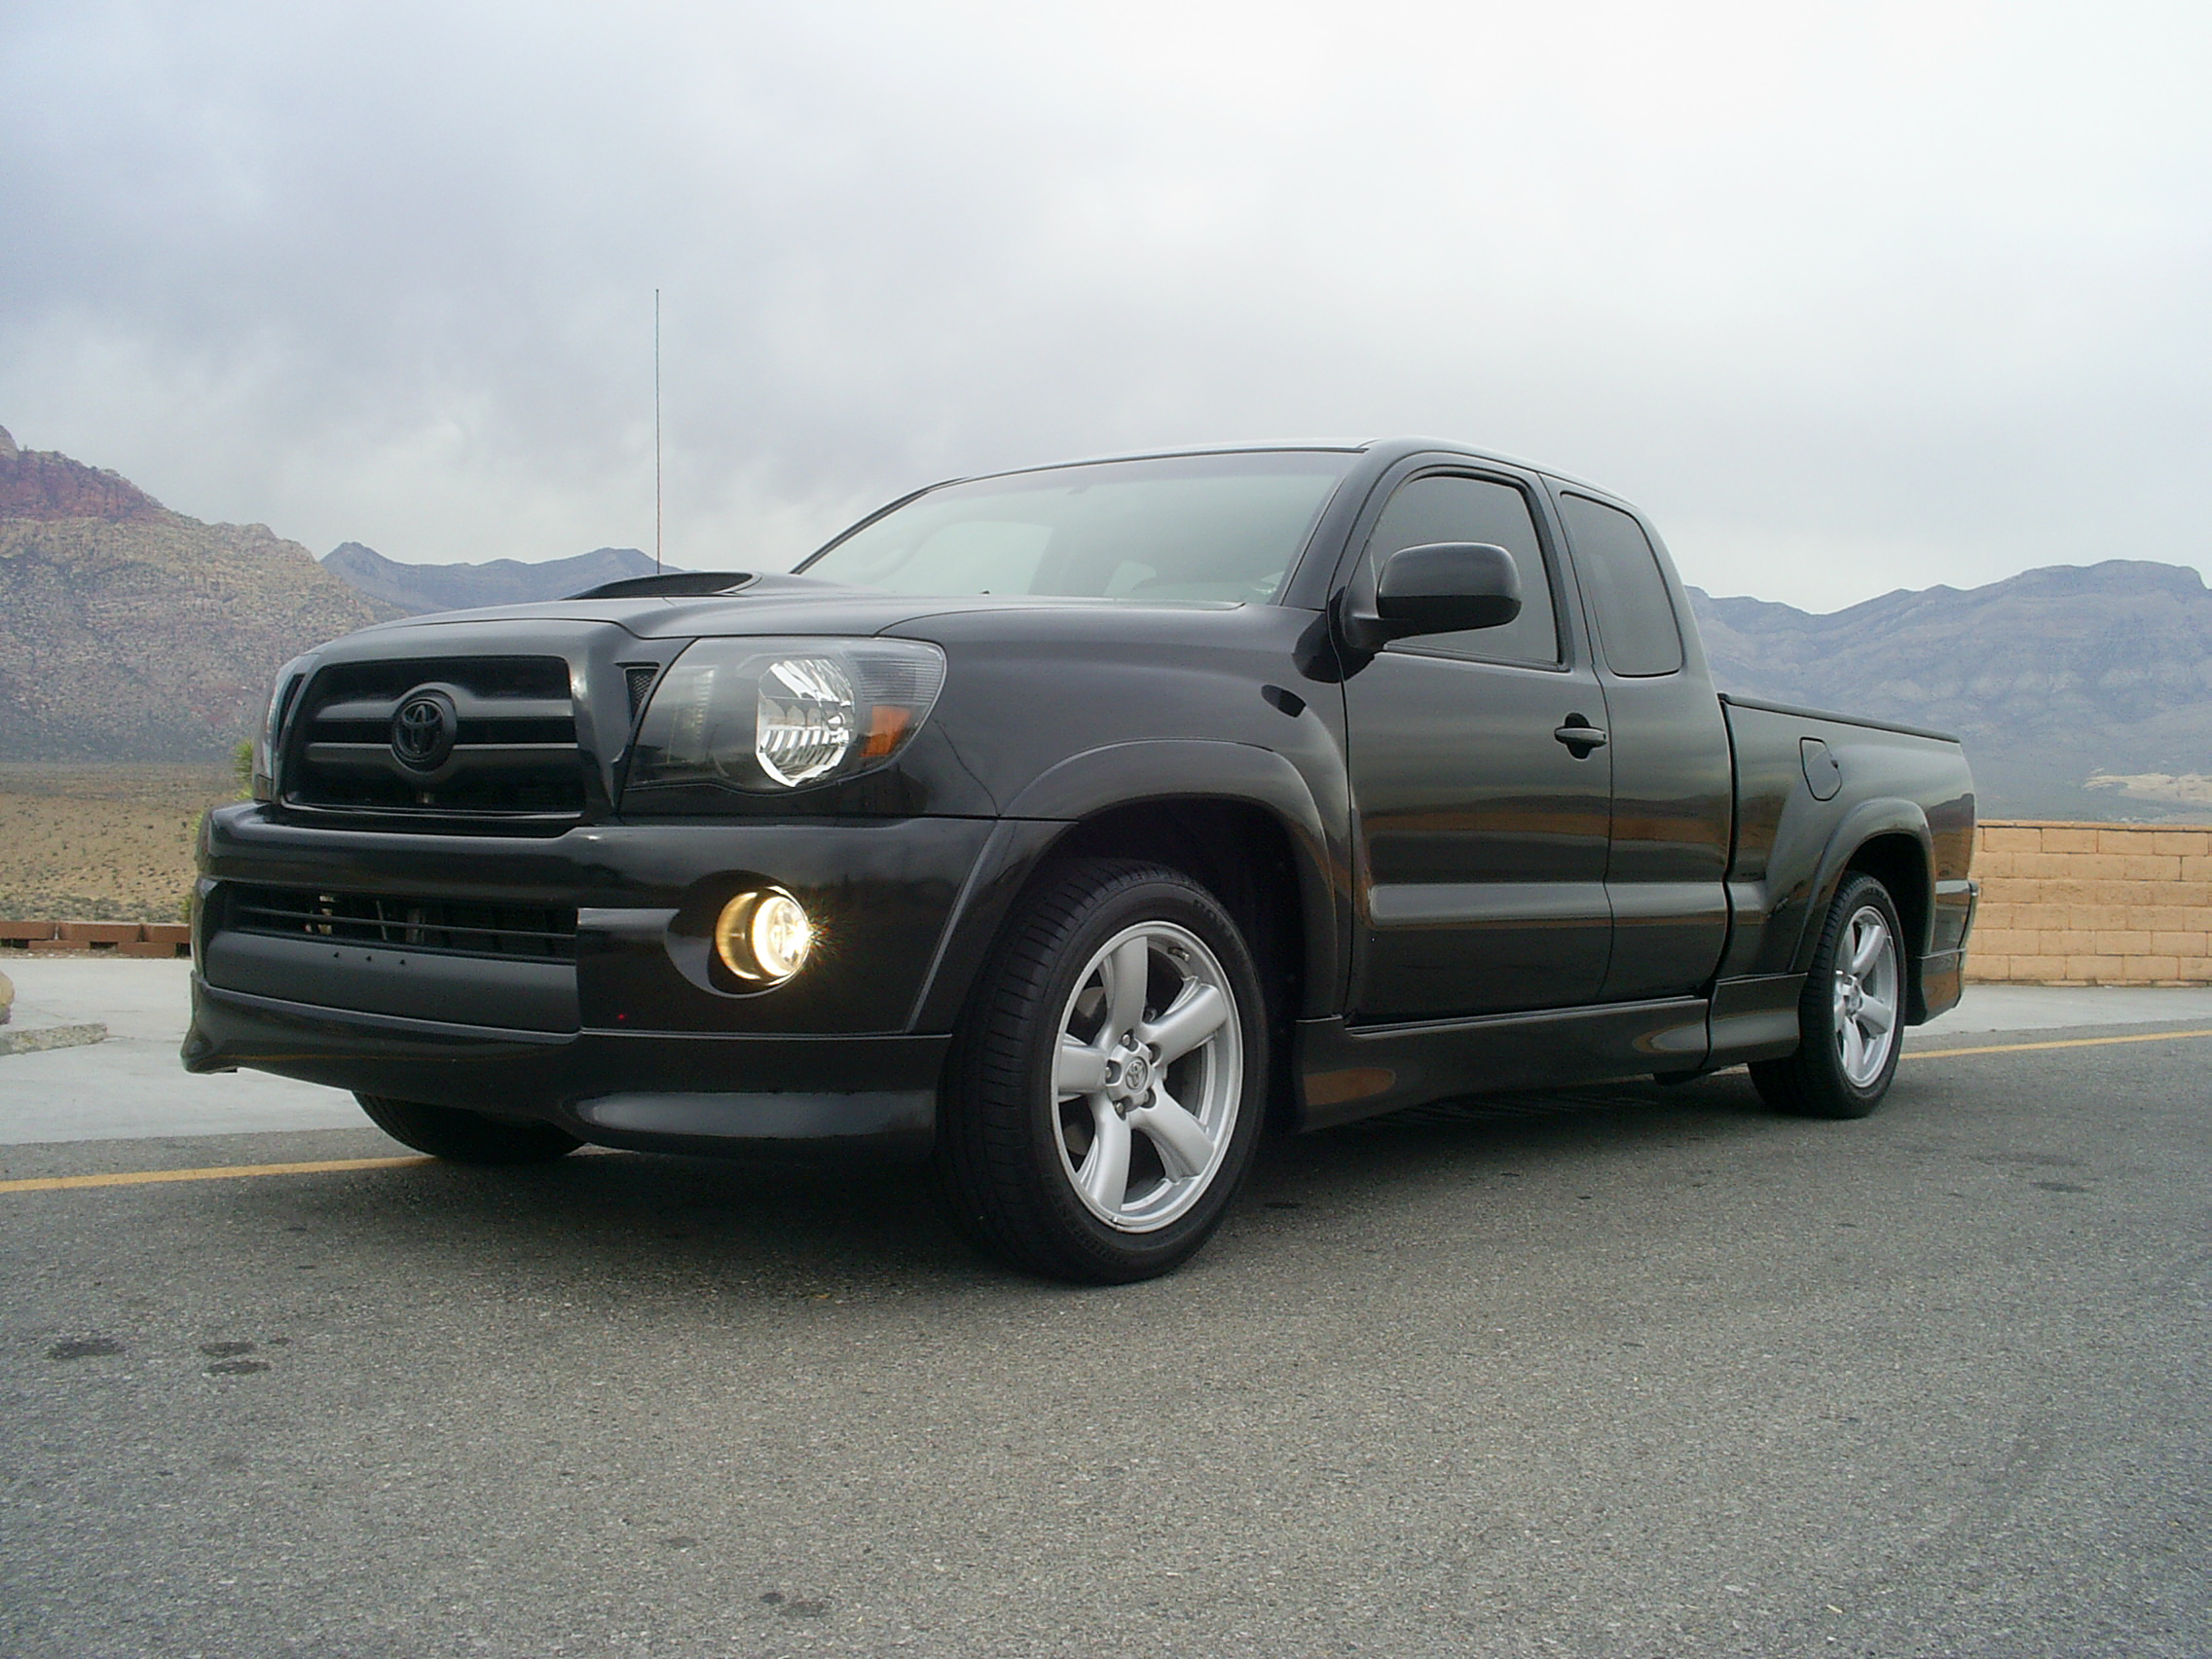 toyota tacoma x-runner-pic. 2